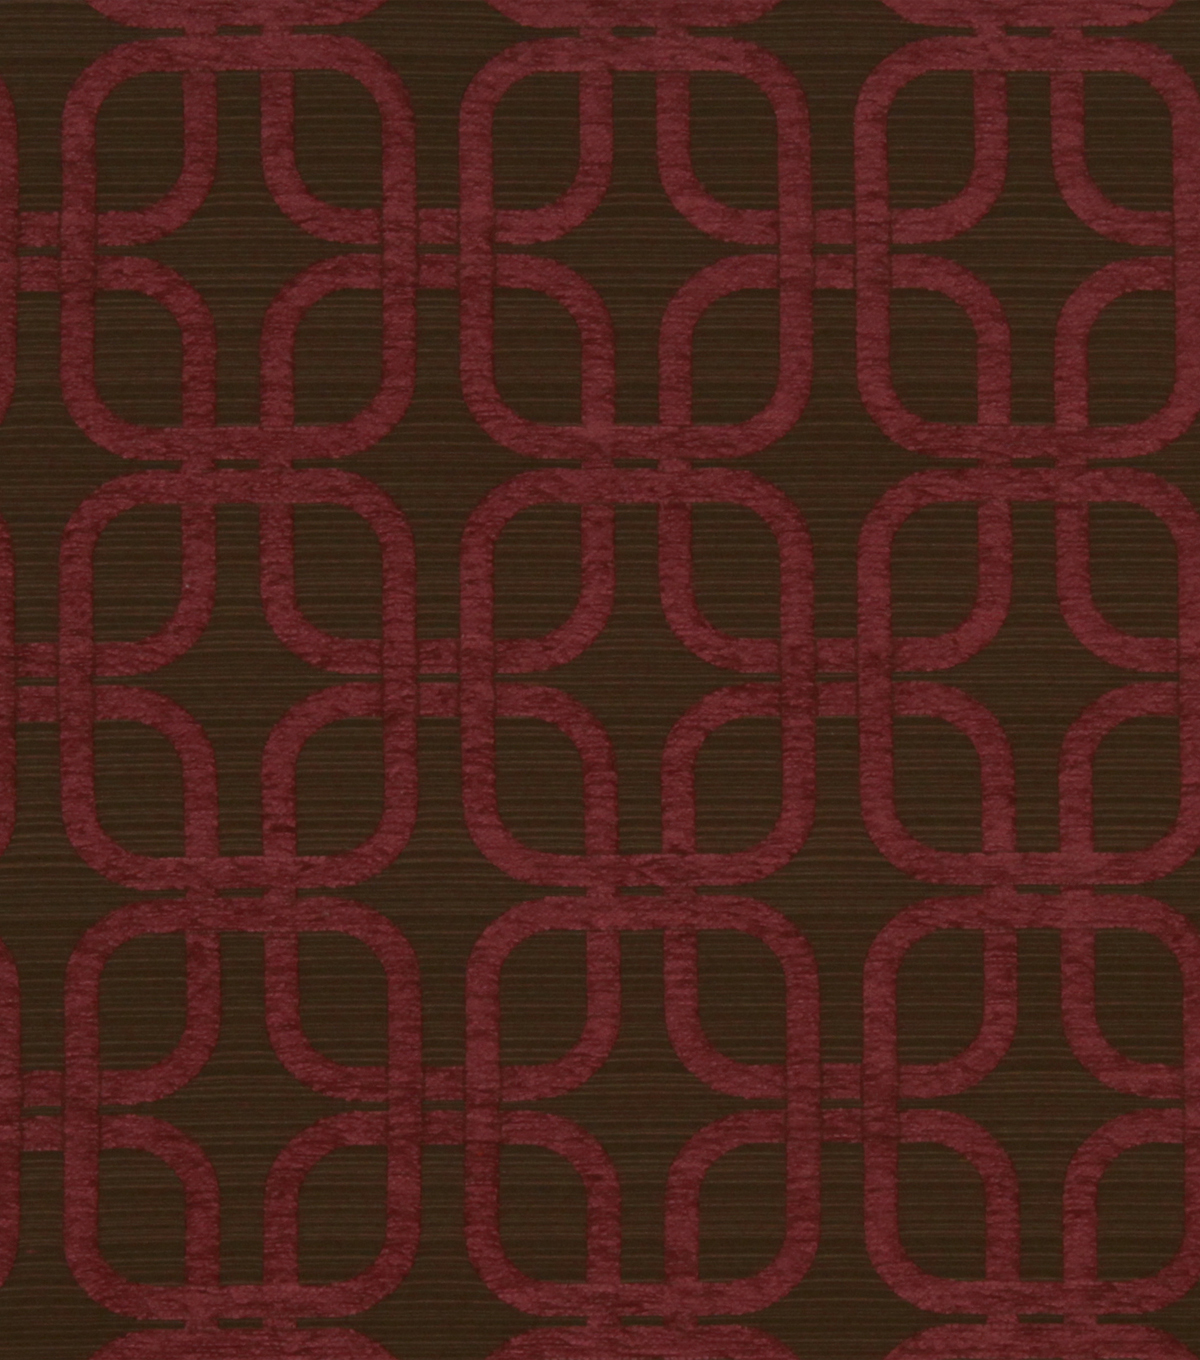 Home Decor 8\u0022x8\u0022 Fabric Swatch-Robert Allen Plush Links Berry